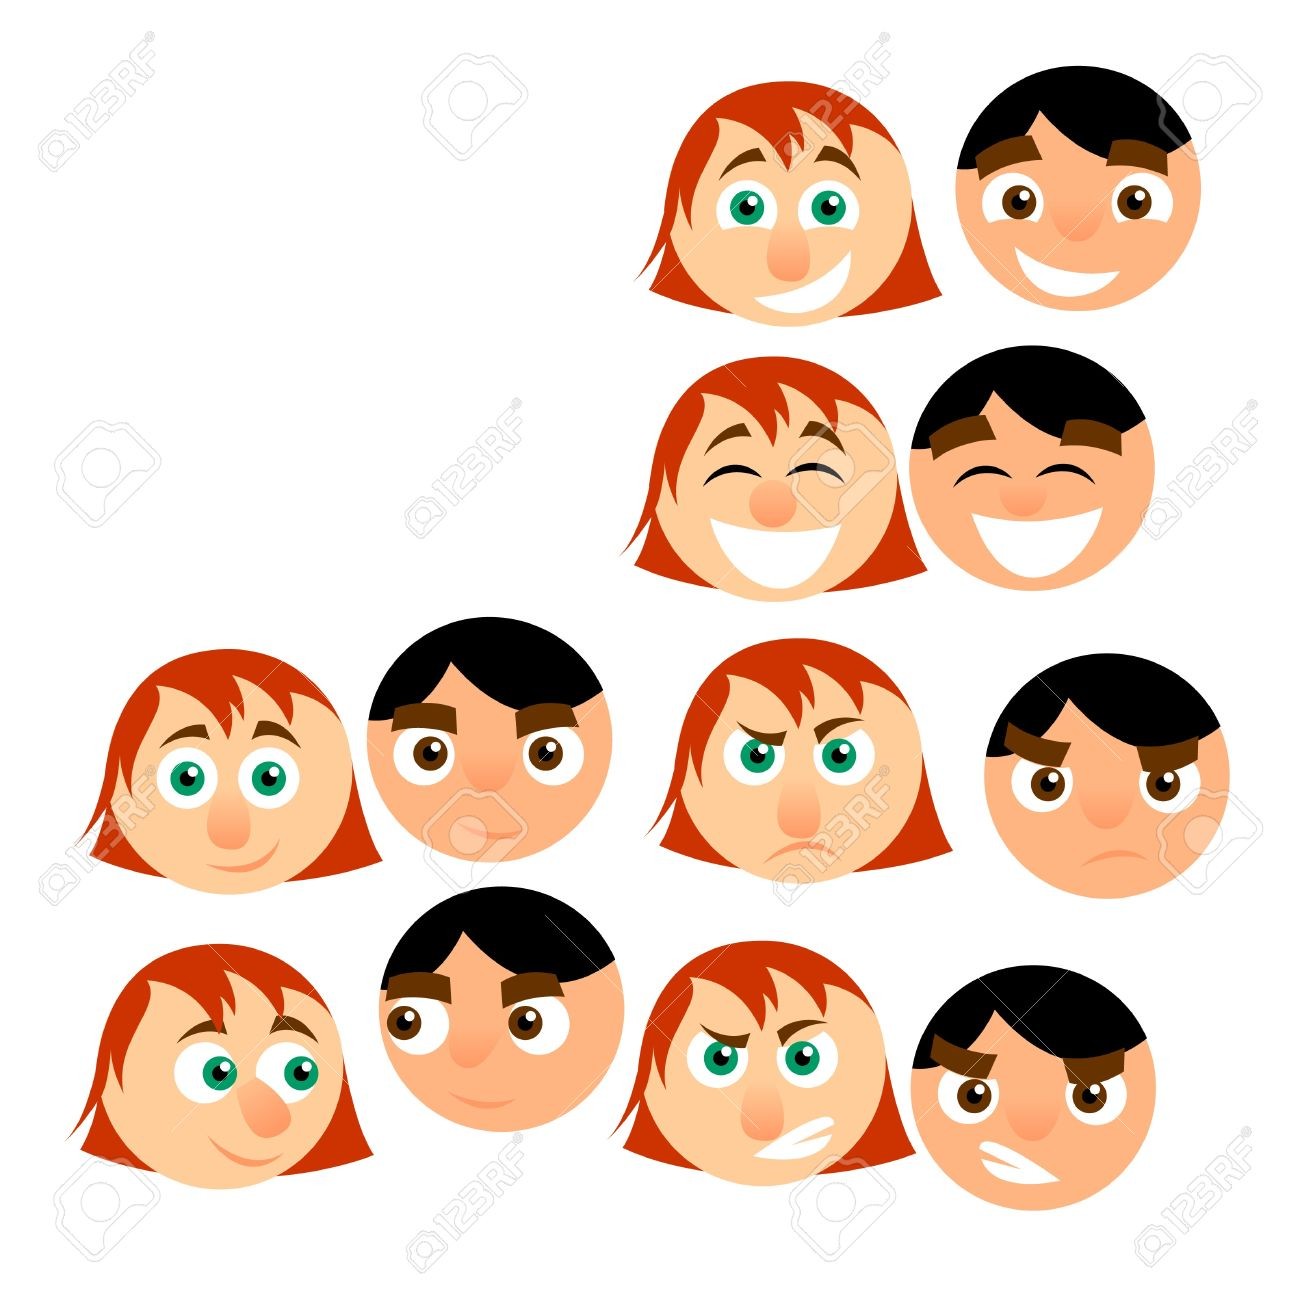 men and women cartoon emotions Stock Vector - 10121691